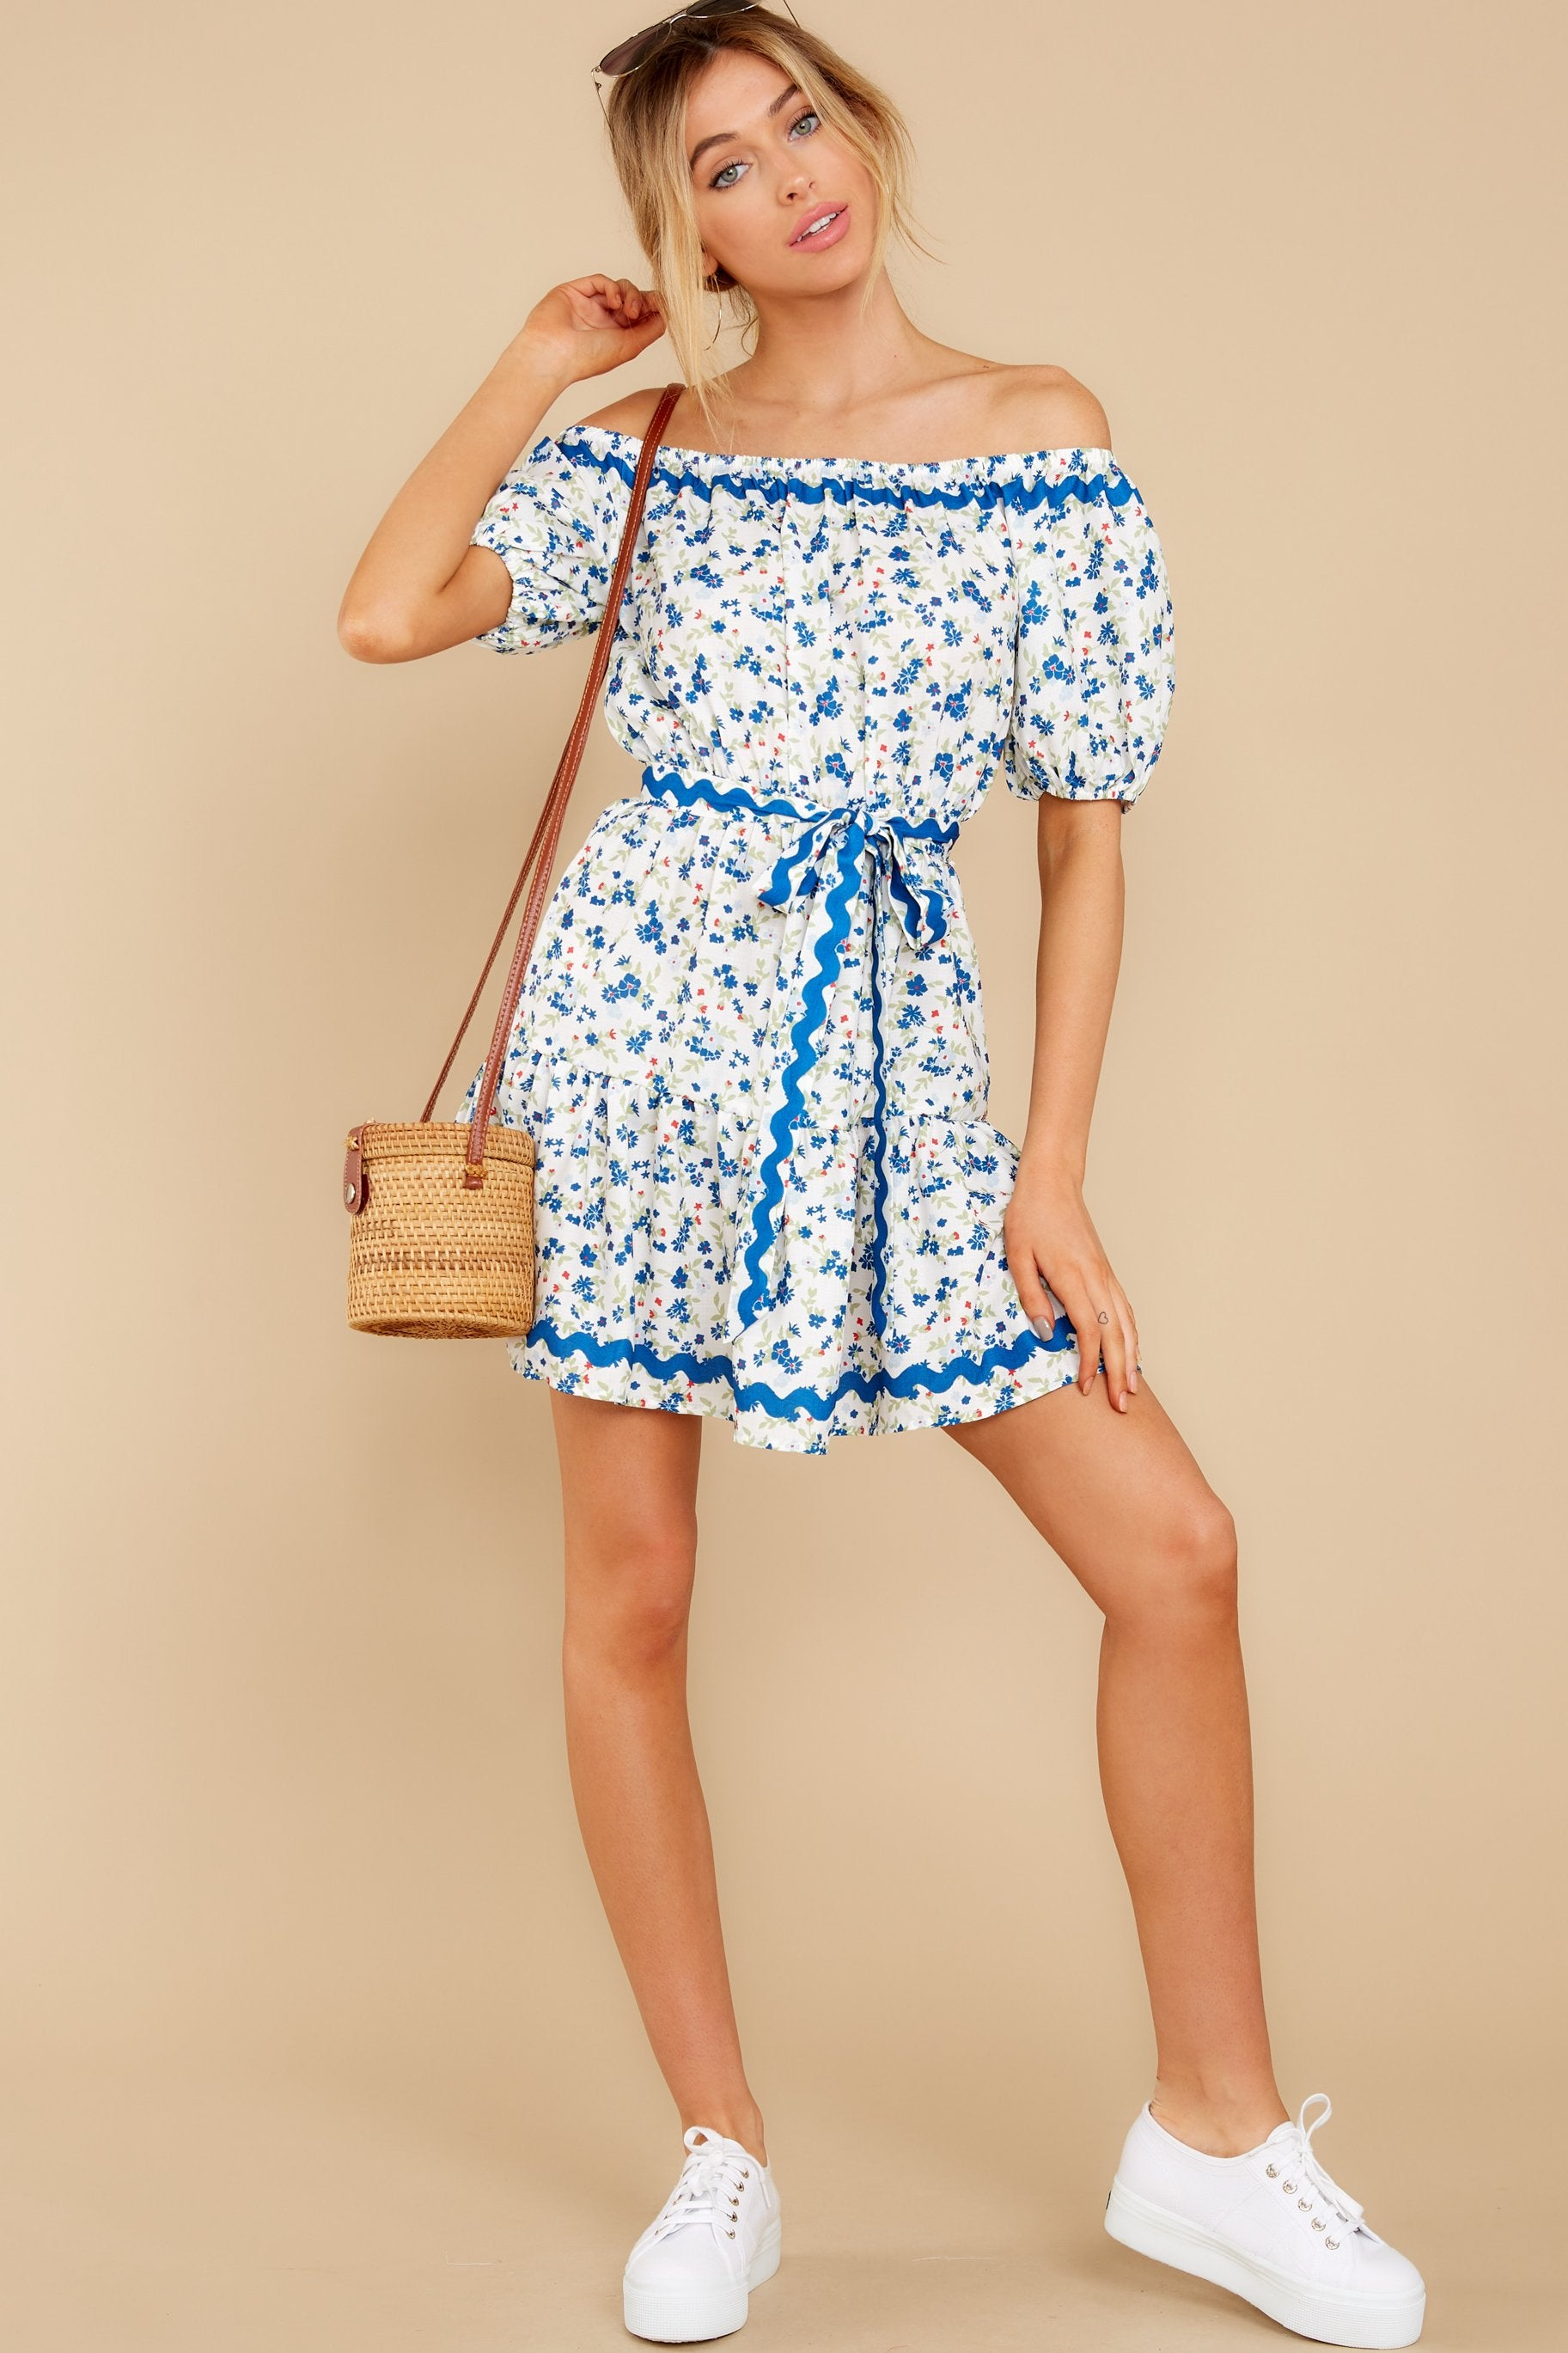 4 Happy About It Blue Floral Print Off The Shoulder Dress at reddress.com